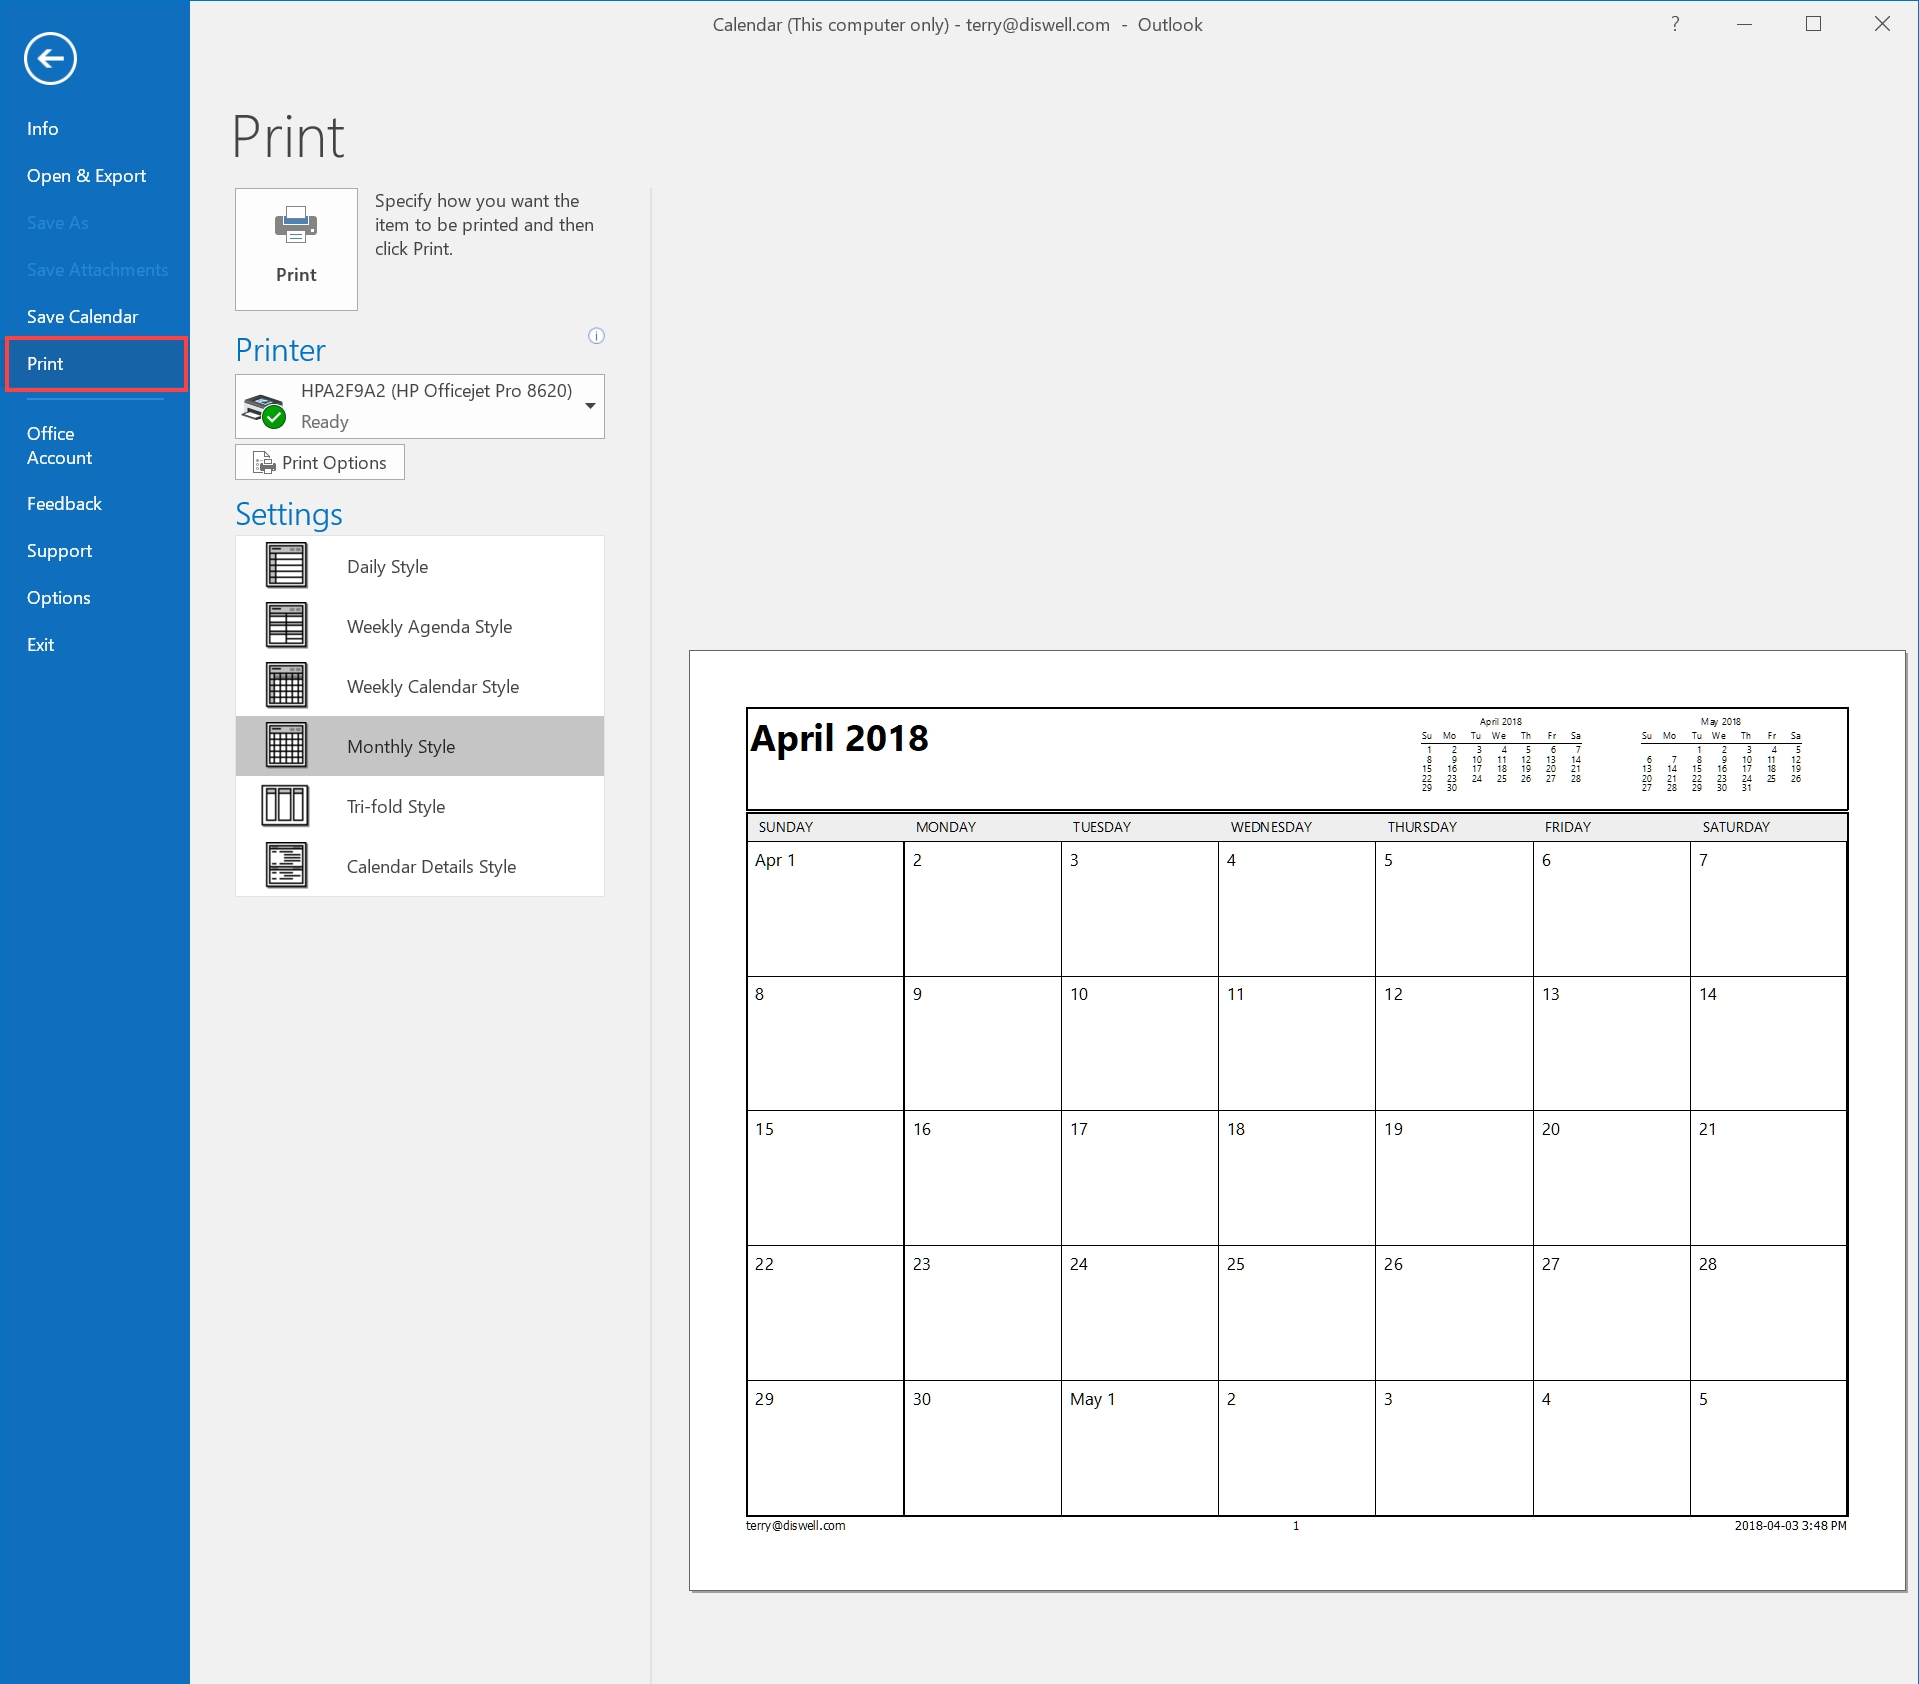 How To Email Or Print Your Calendar In Outlook 2016 - Hostpapa_Outlook Calendar Printing Tools